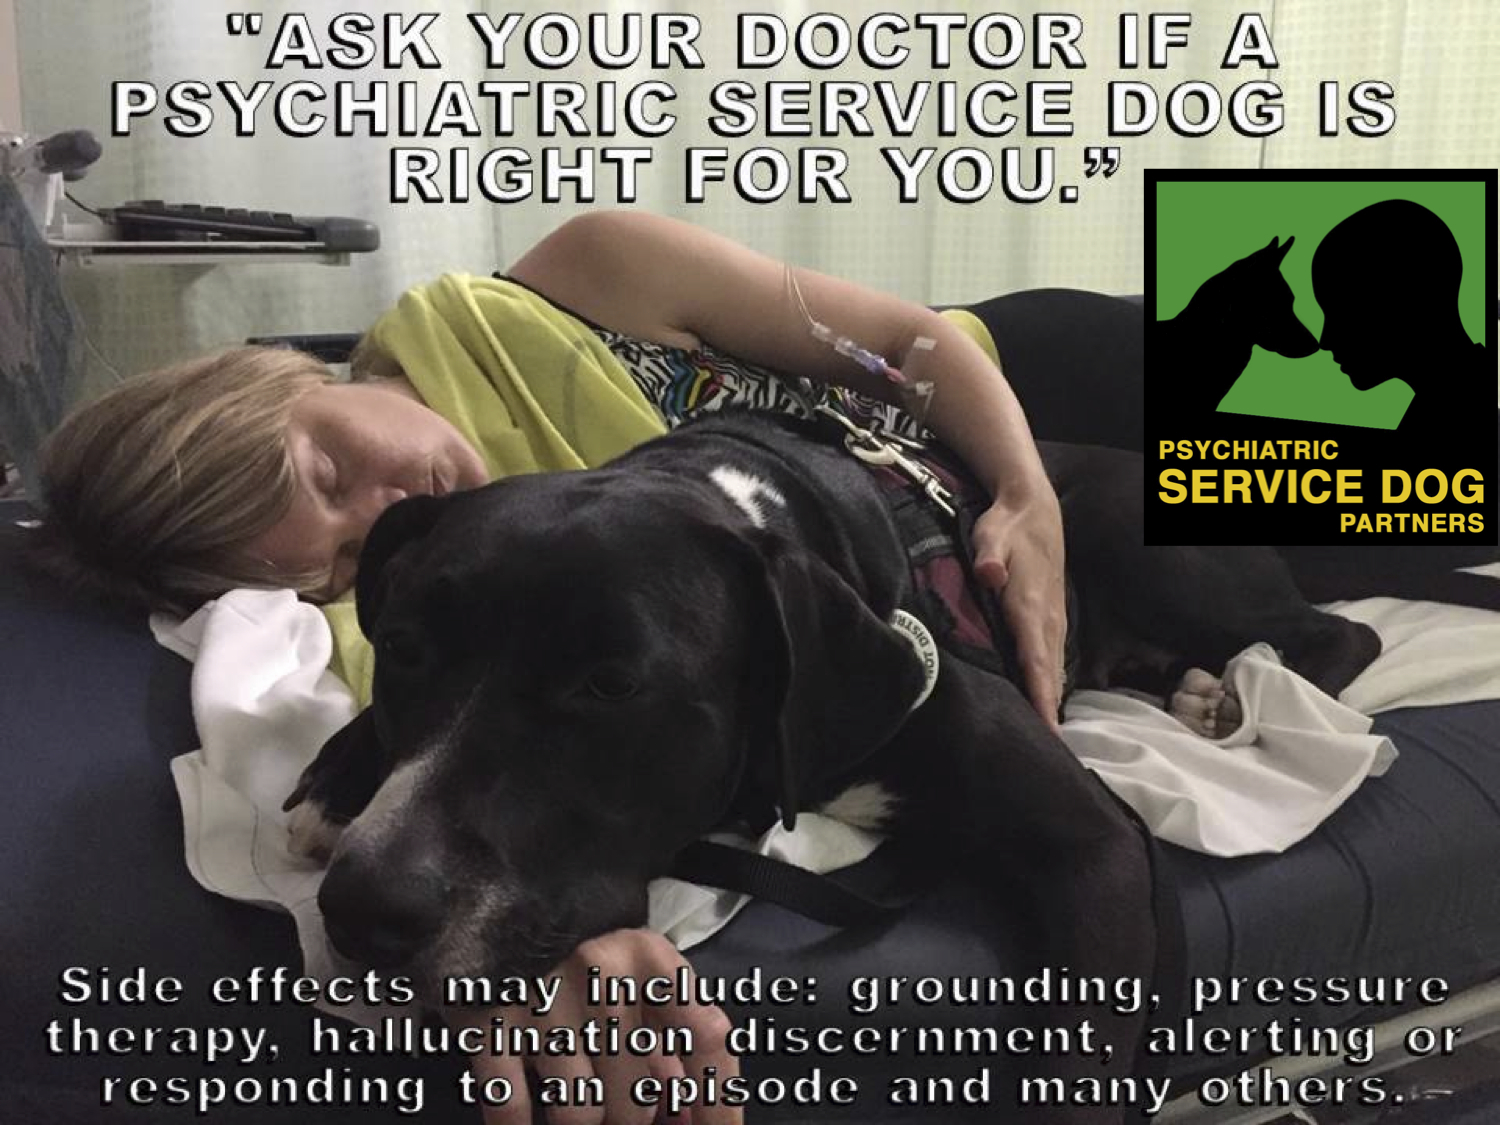 Legal Questions Businesses Can Ask About Service Dogs